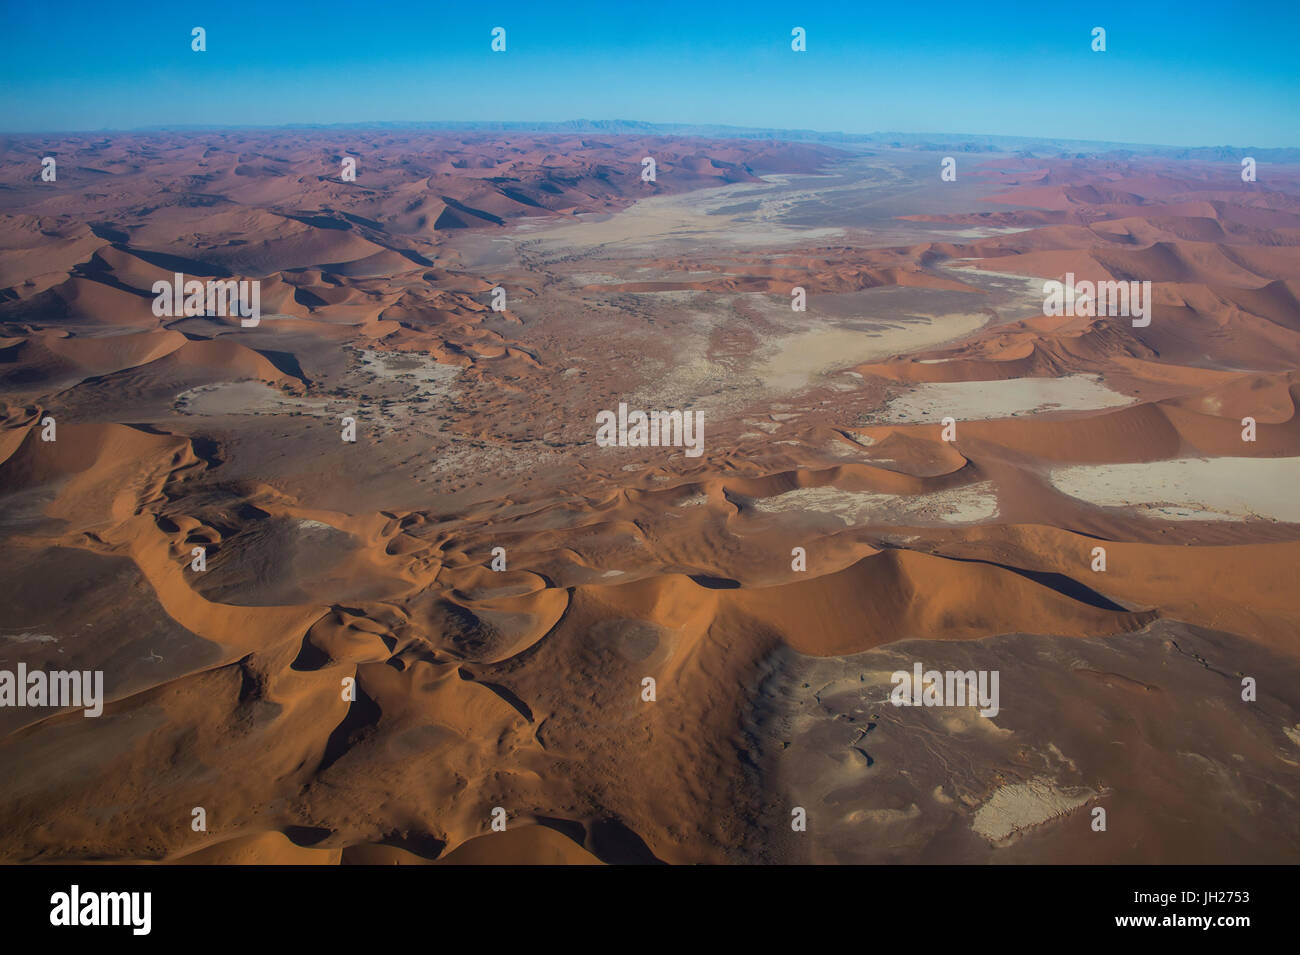 Aerial of a dead lake (vlei), in the Namib Desert, Namibia, Africa - Stock Image